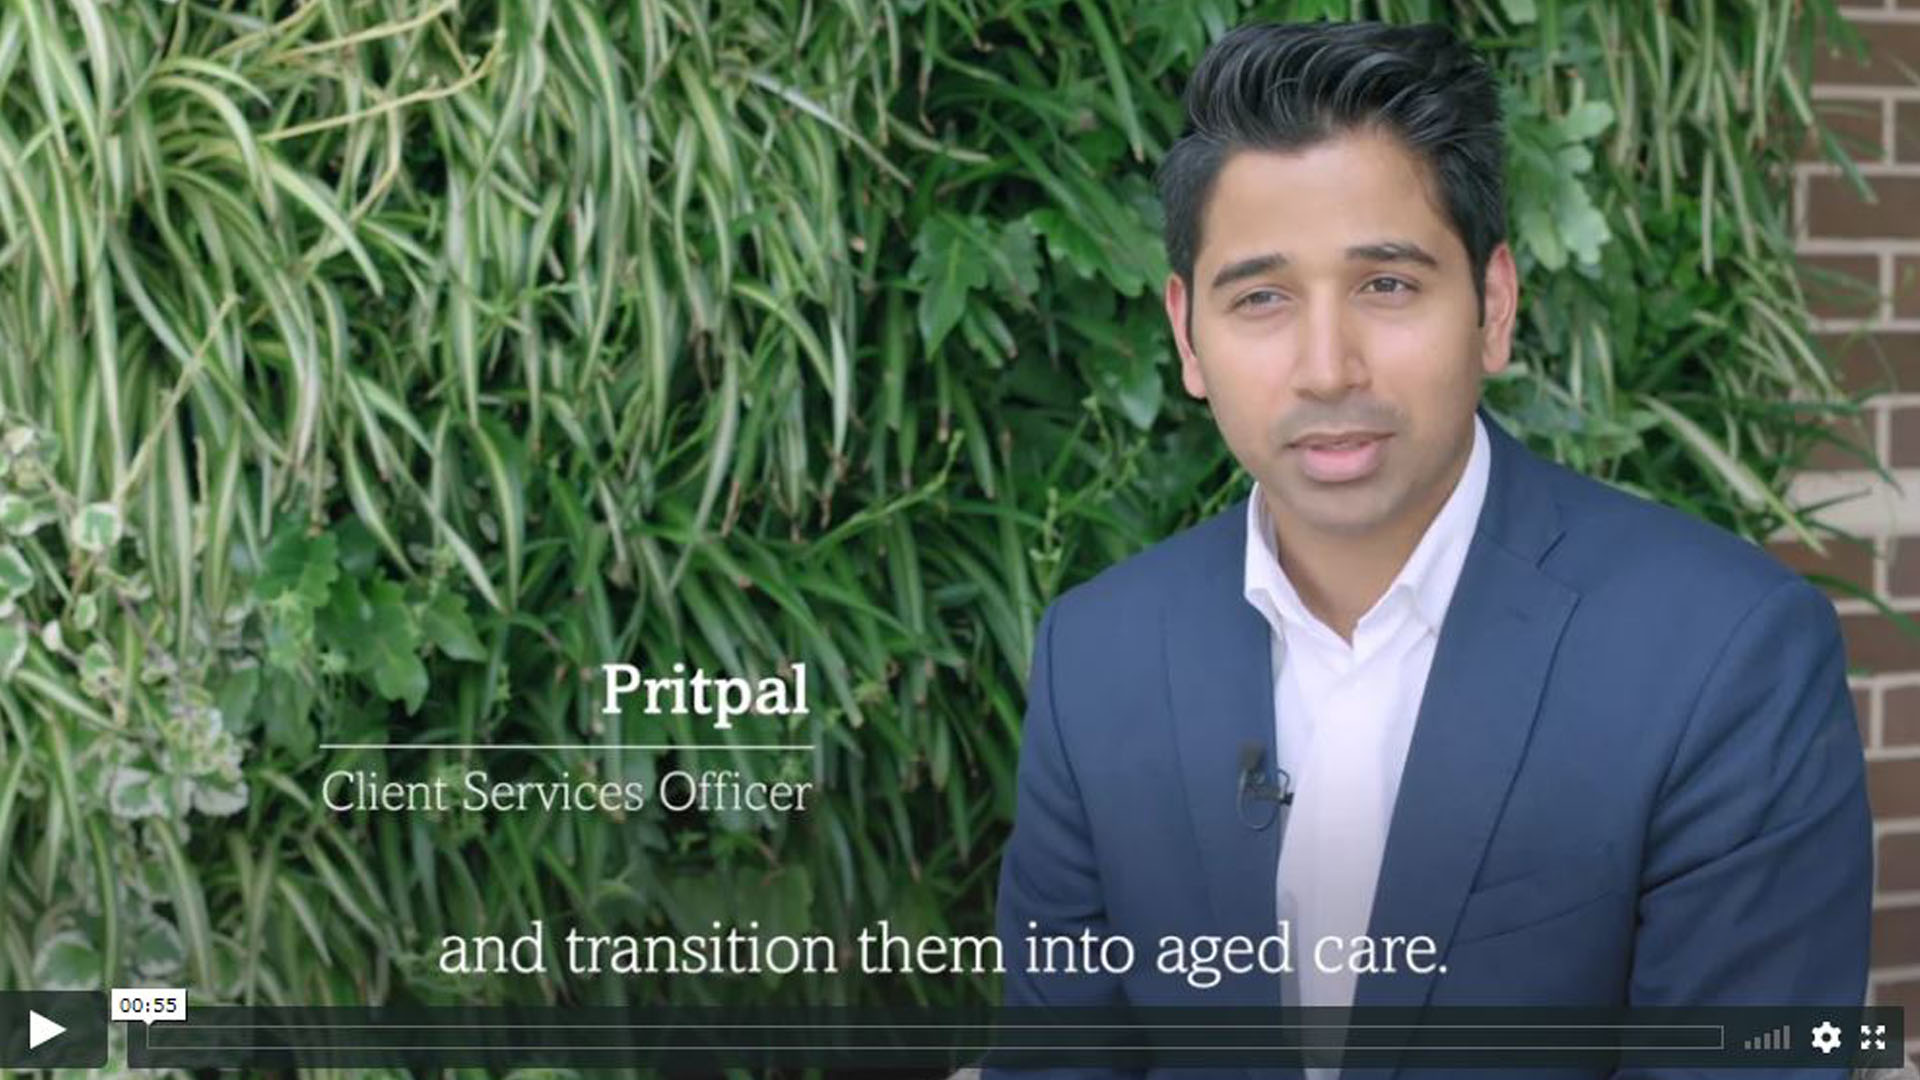 Pritpal Client services officer